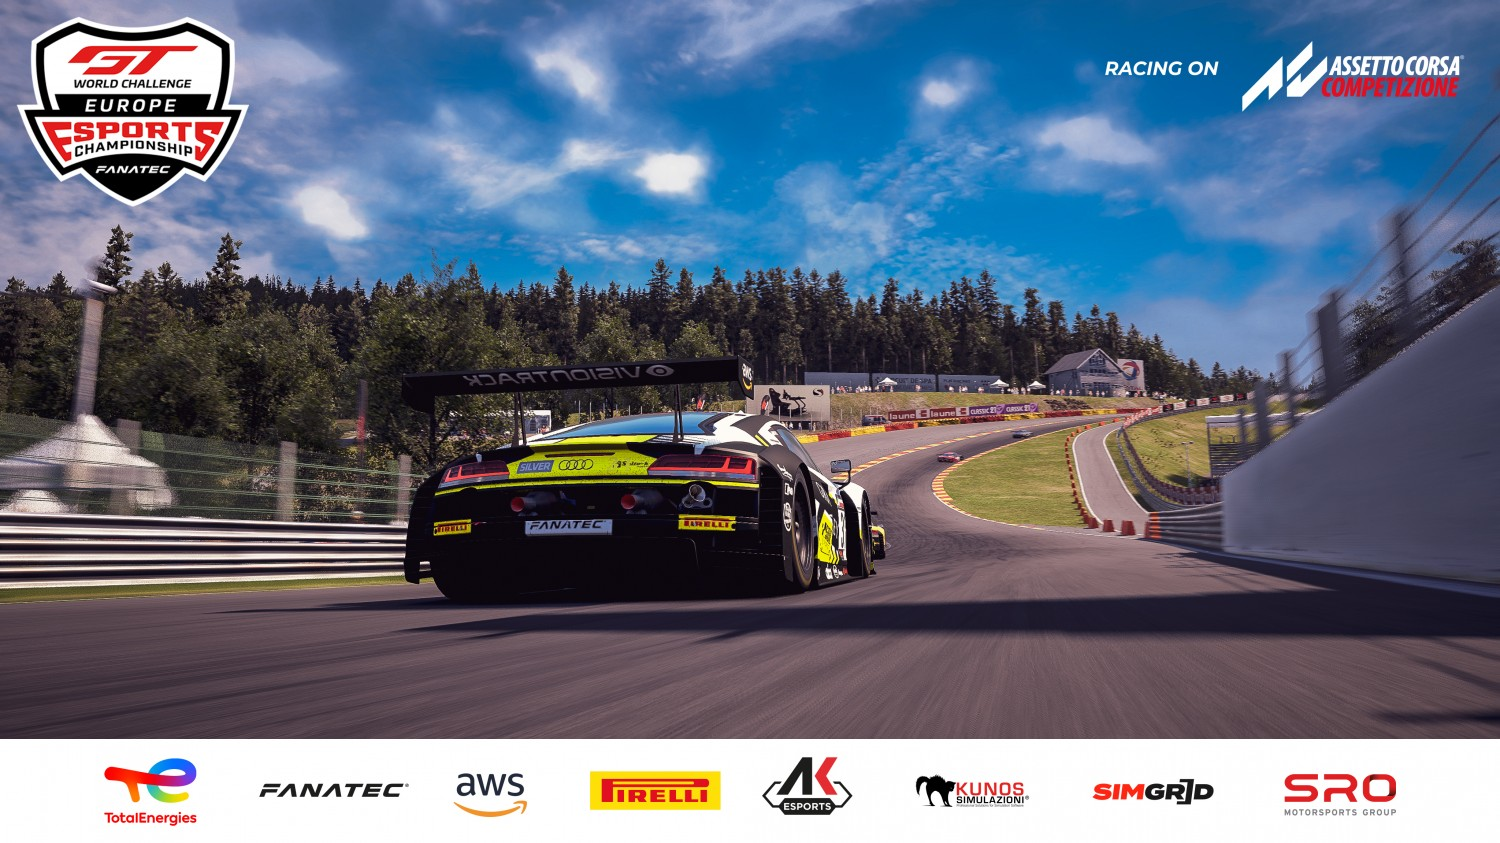 ESPORTS: Ultimate test awaits Assetto Corsa Competizione racers as GT World Challenge Europe Esports gets set for 24 Hours of Spa